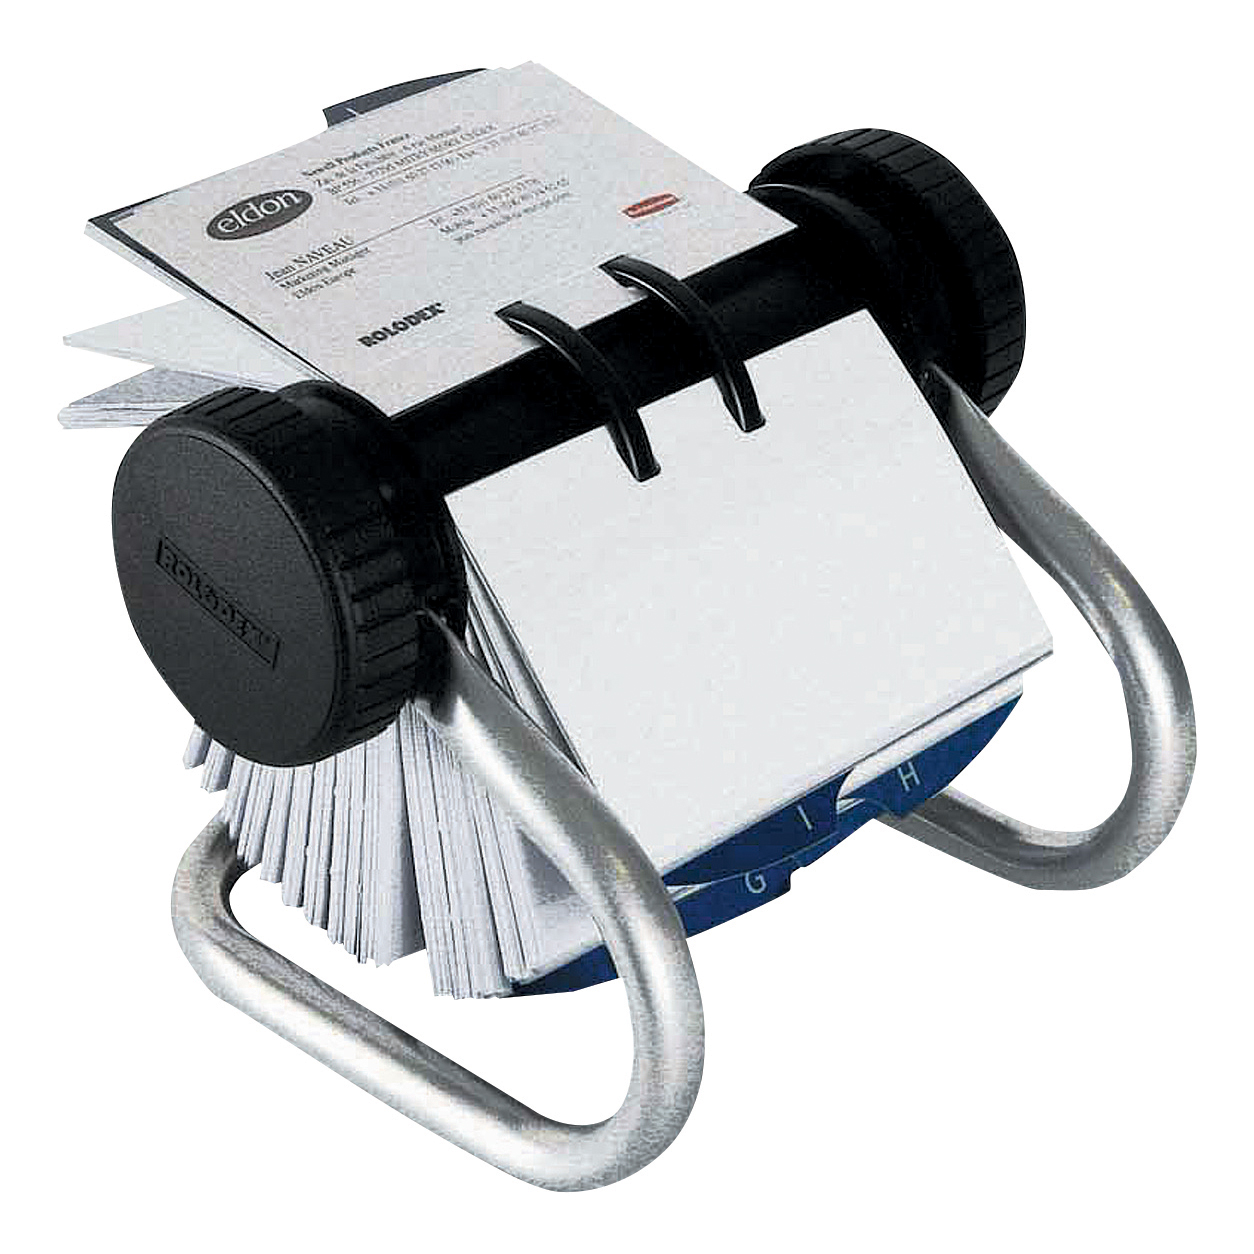 Rolodex classic 200 rotary business card index file with 200 sleeves rolodex classic 200 rotary business card index file with 200 sleeves 24 a z index tabs chrome ref 67237 colourmoves